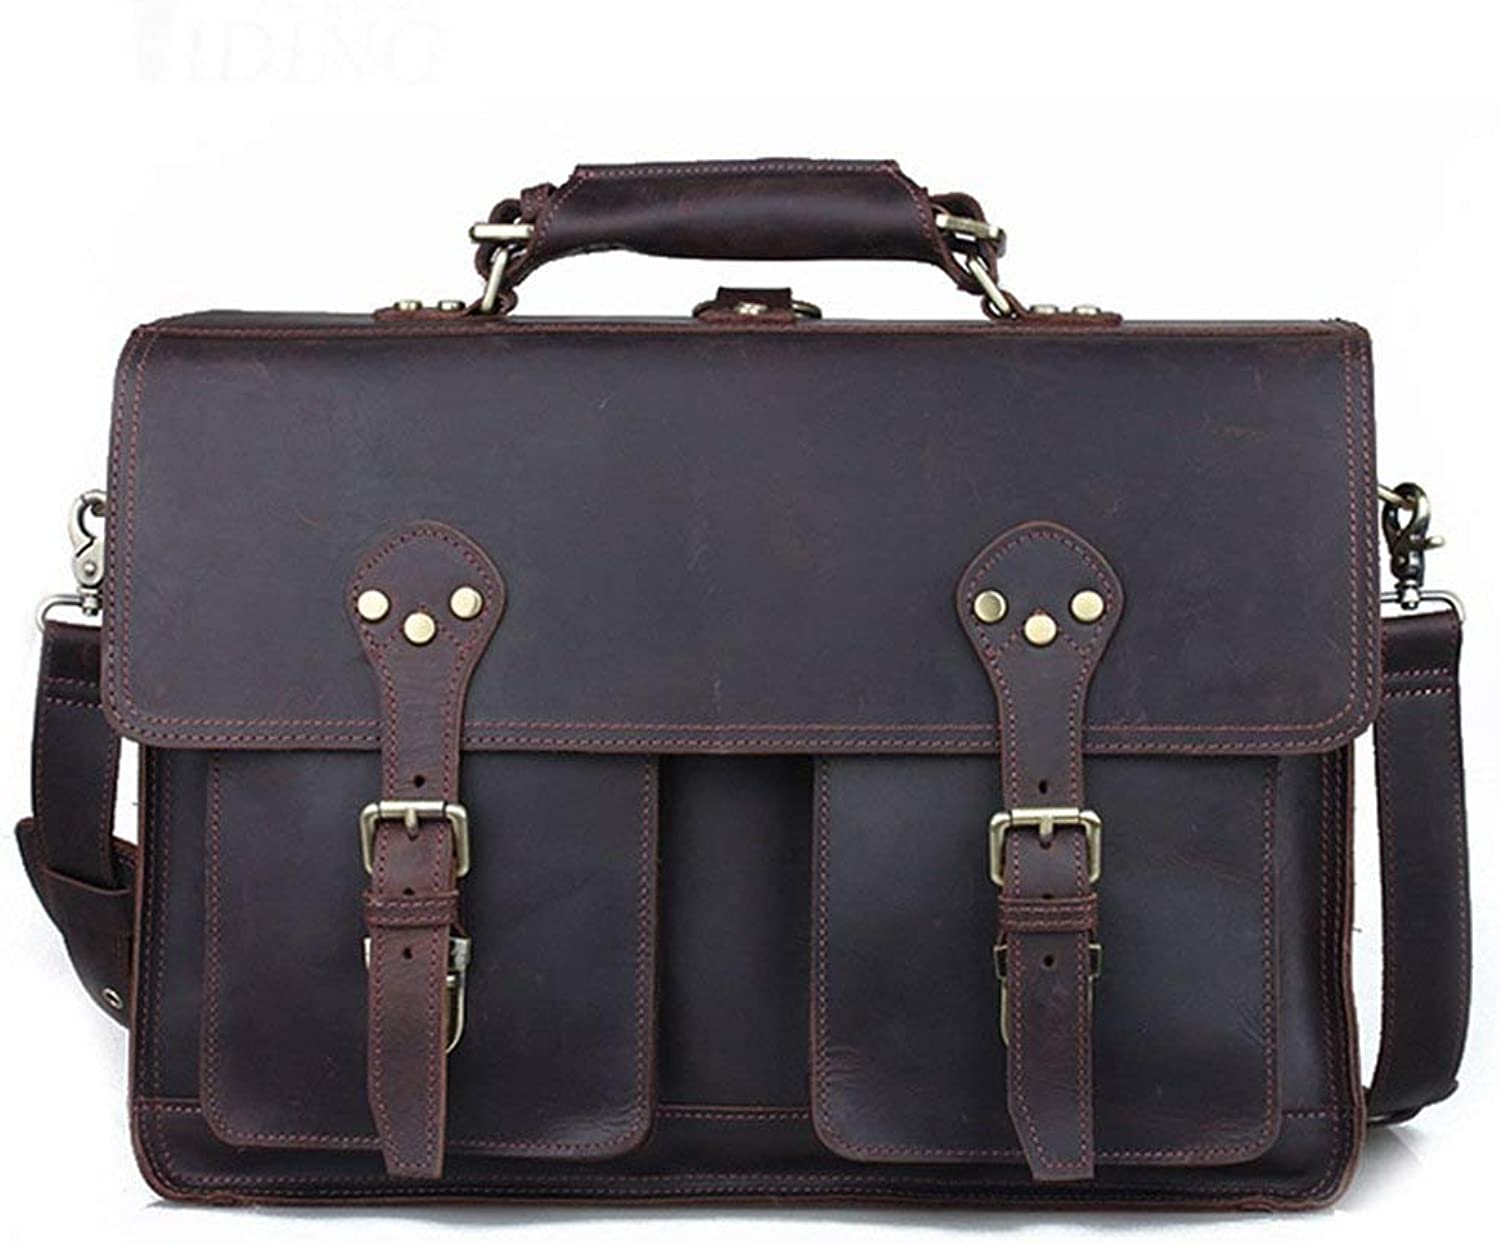 Briefcase Home Aktentasche Fashion Schultertasche Schultertasche Three-in-One Three-in-One Three-in-One Herrentasche B07L1BY89H | Sale Düsseldorf